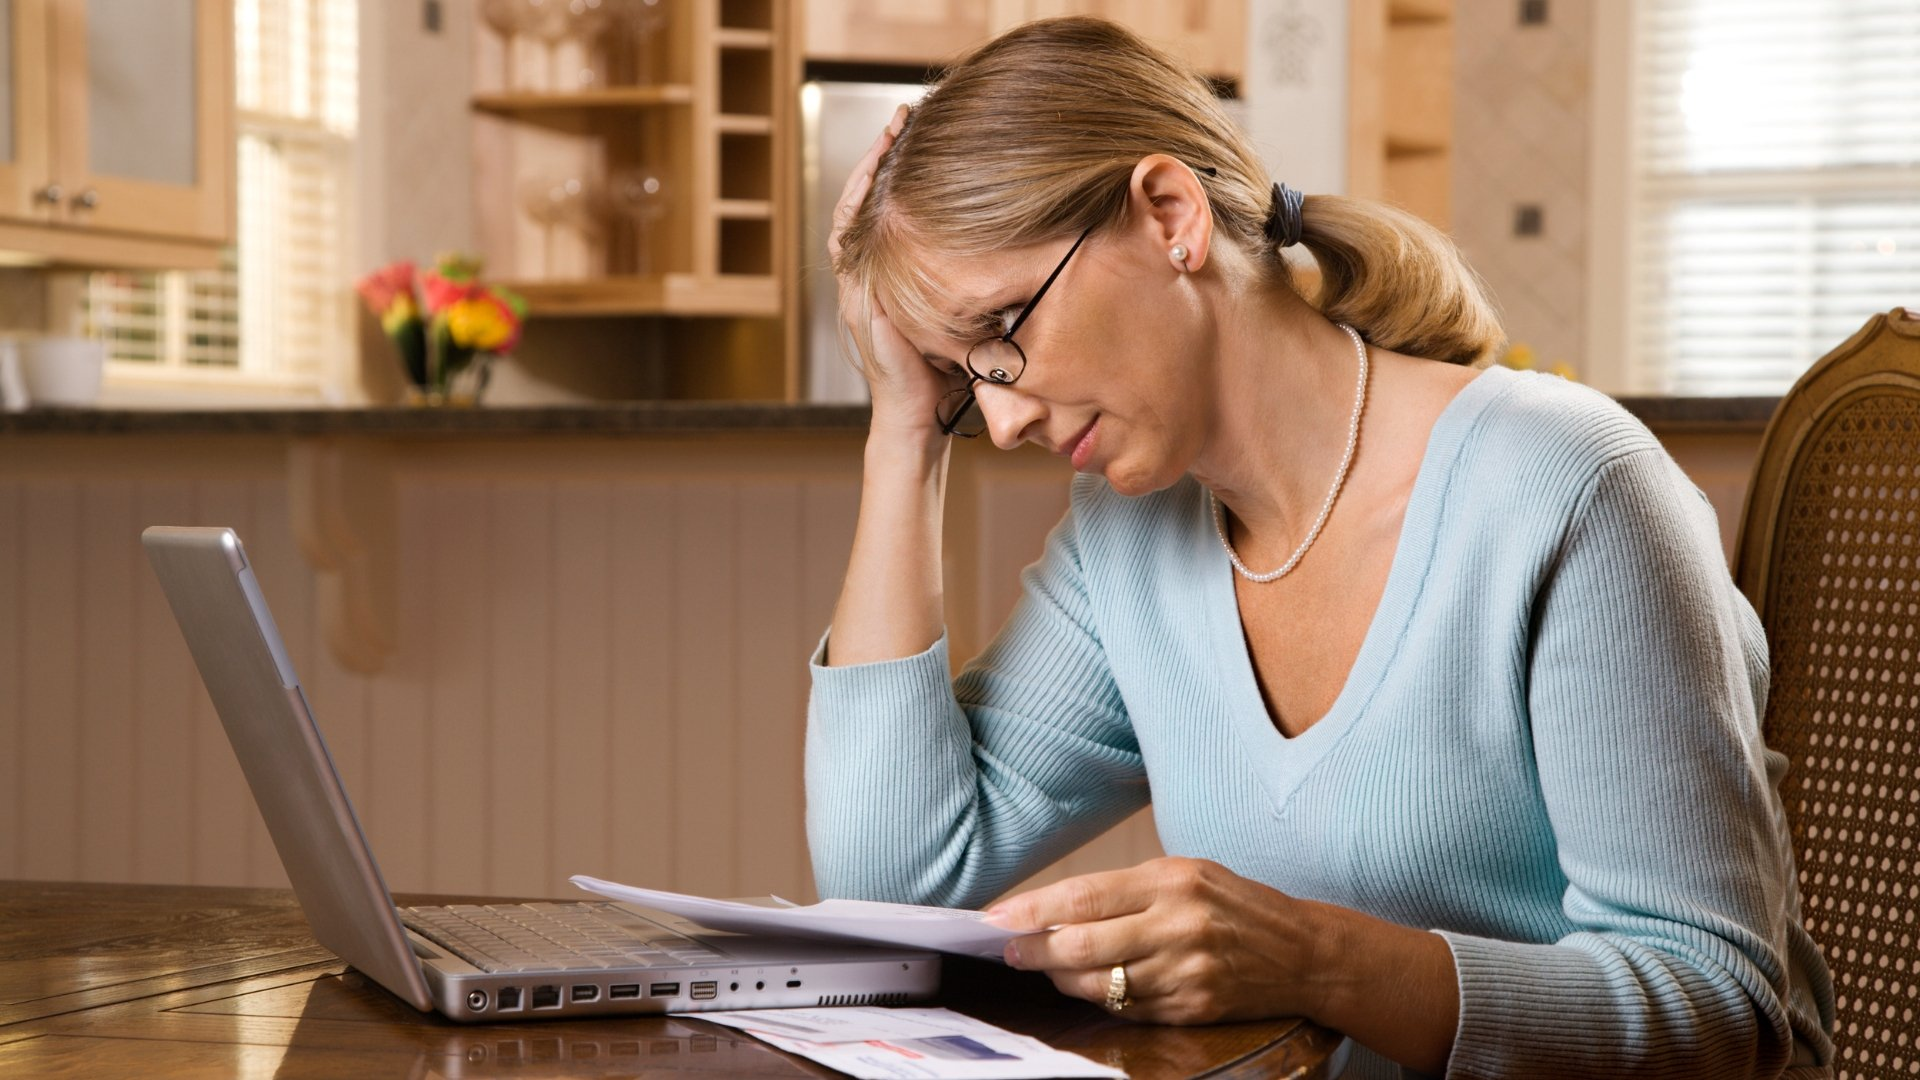 Woman Concerned About High Energy Bills